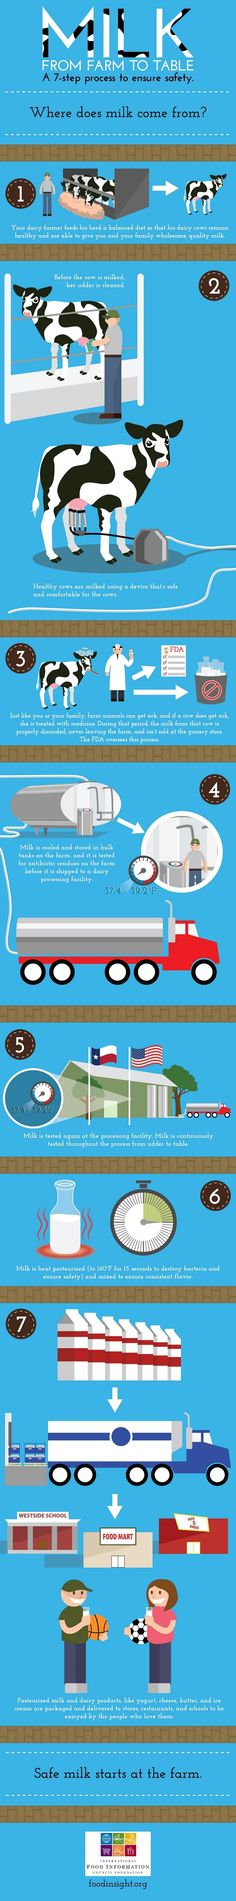 DairyGood.org   Milk From Farm to Table: A 7-Step Process to Ensure Safety. Milk is a quality product that is tested many times to ensure safety.